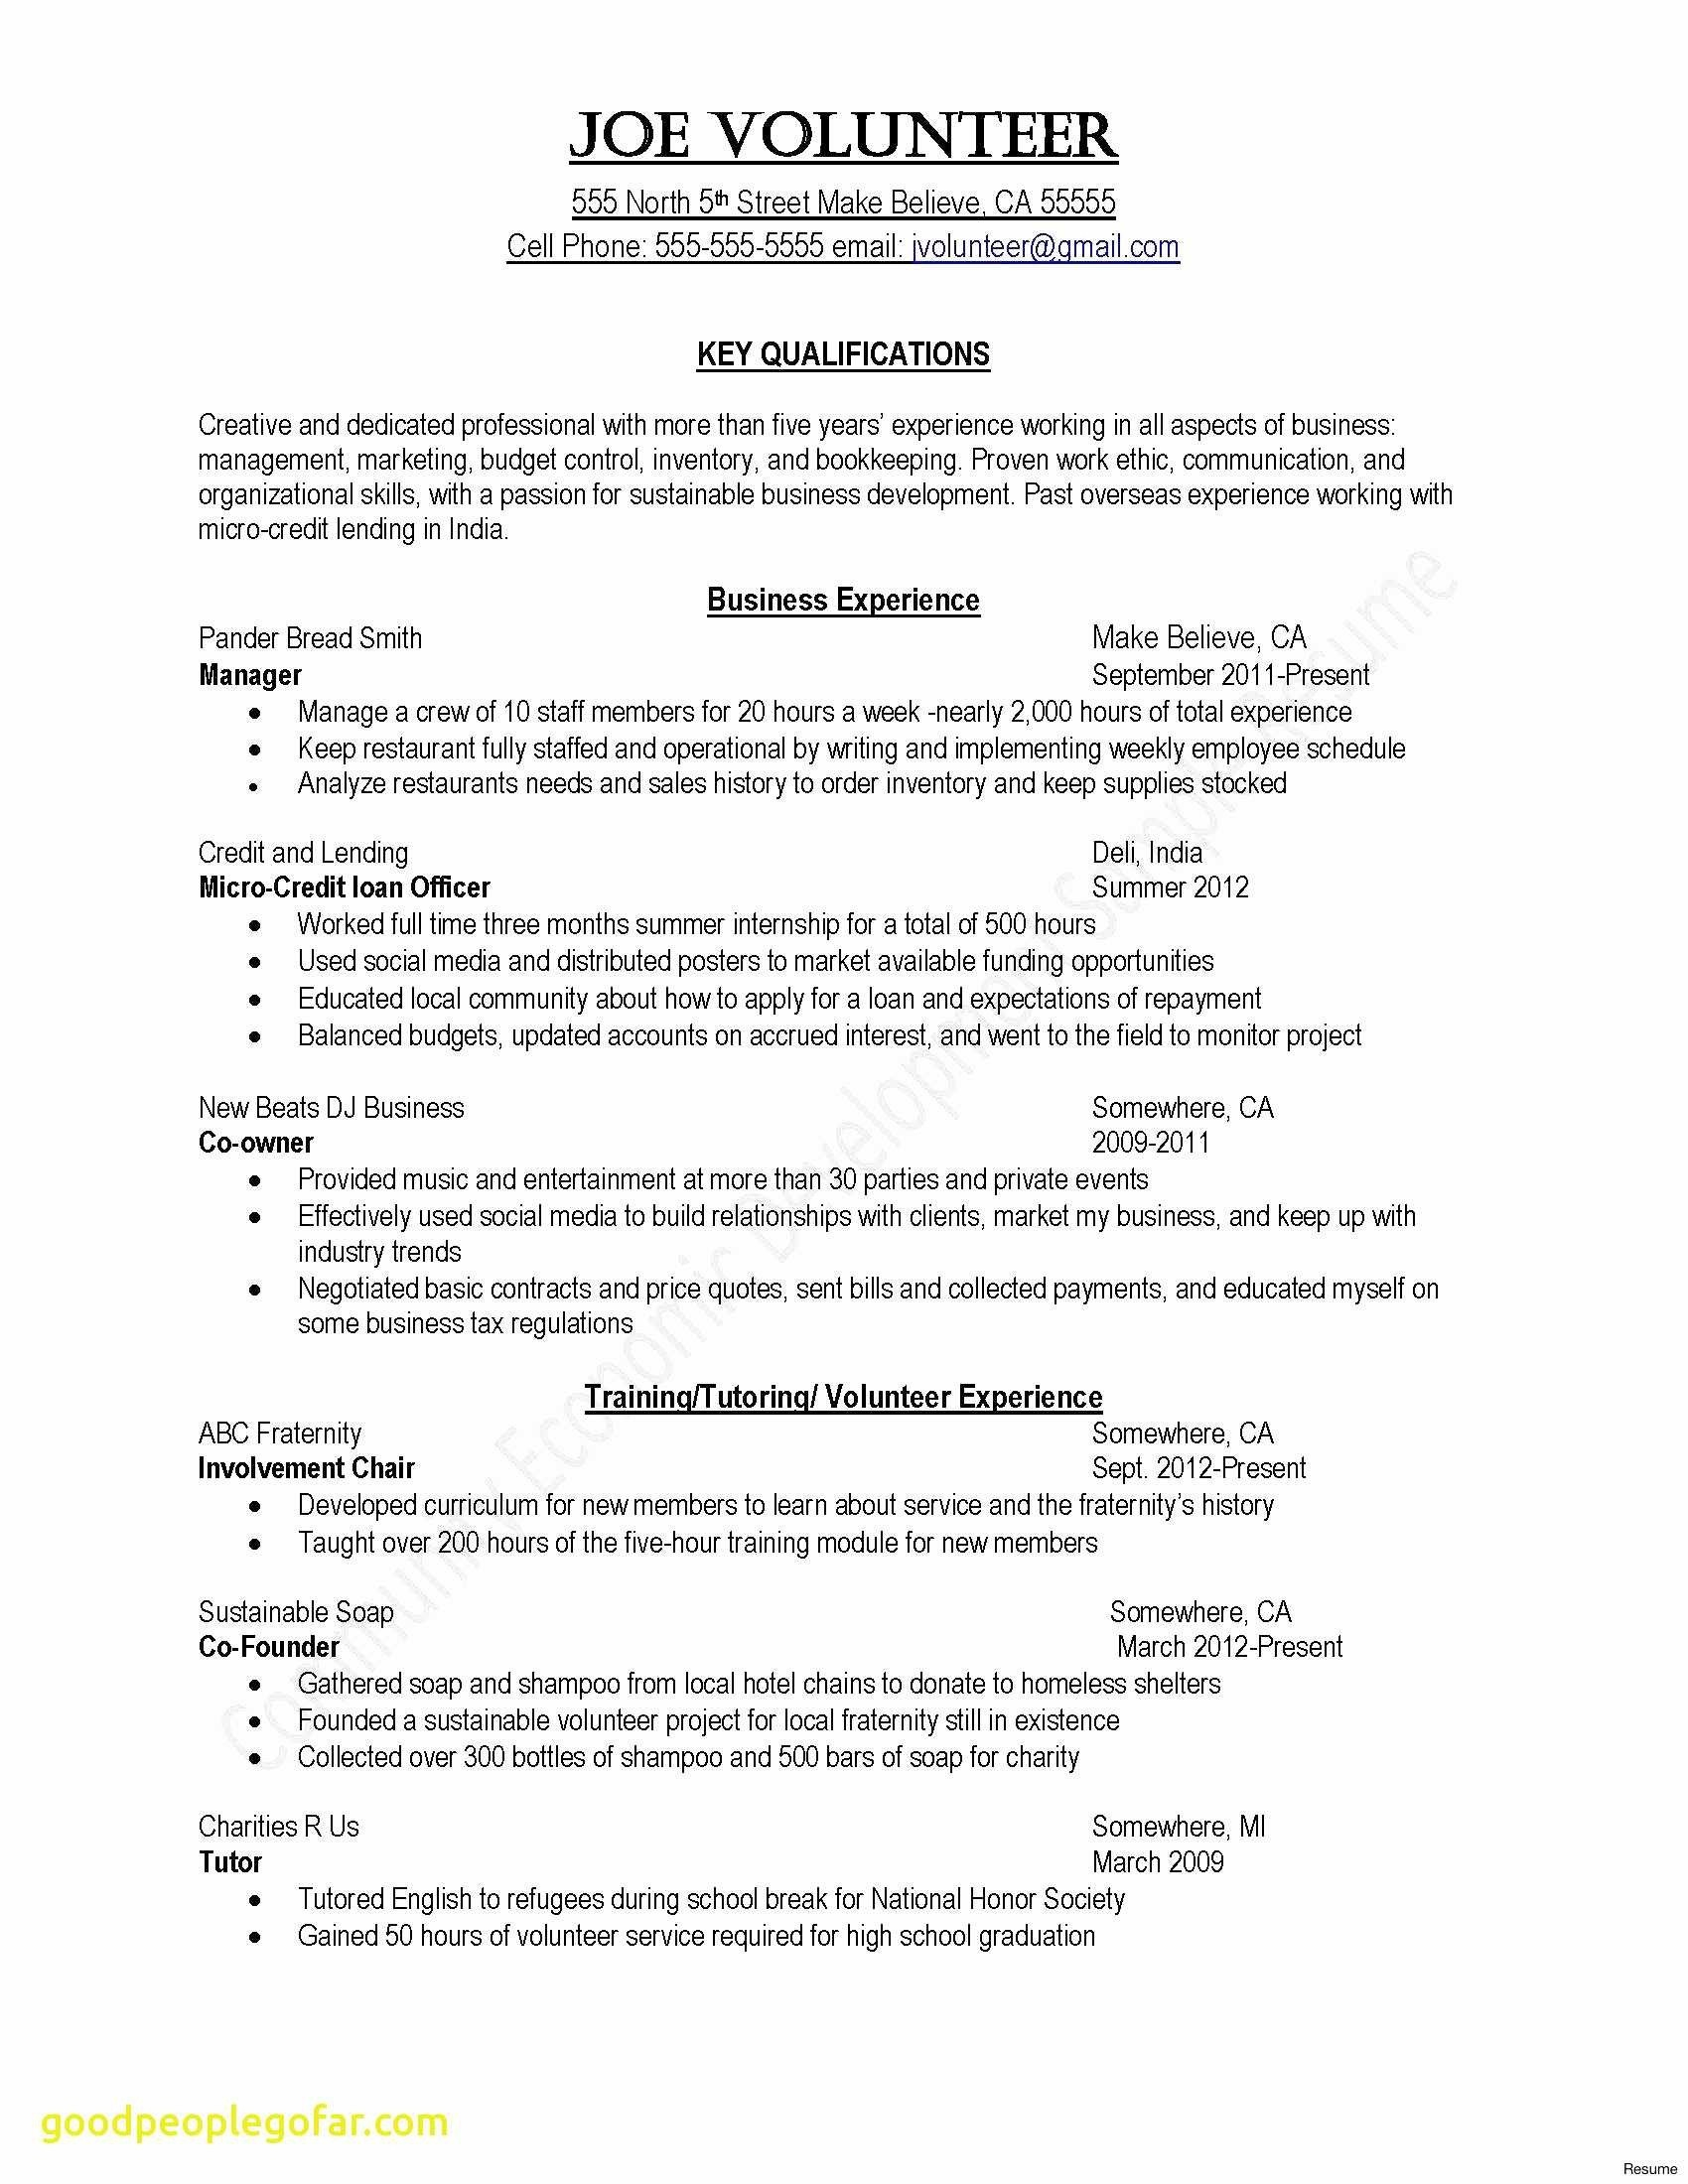 forklift operator resume example-Forklift Operator Resume Lovely Elegant Sample College Application Resume Lovely Painter Resume 0d 18 Elegant 19-g